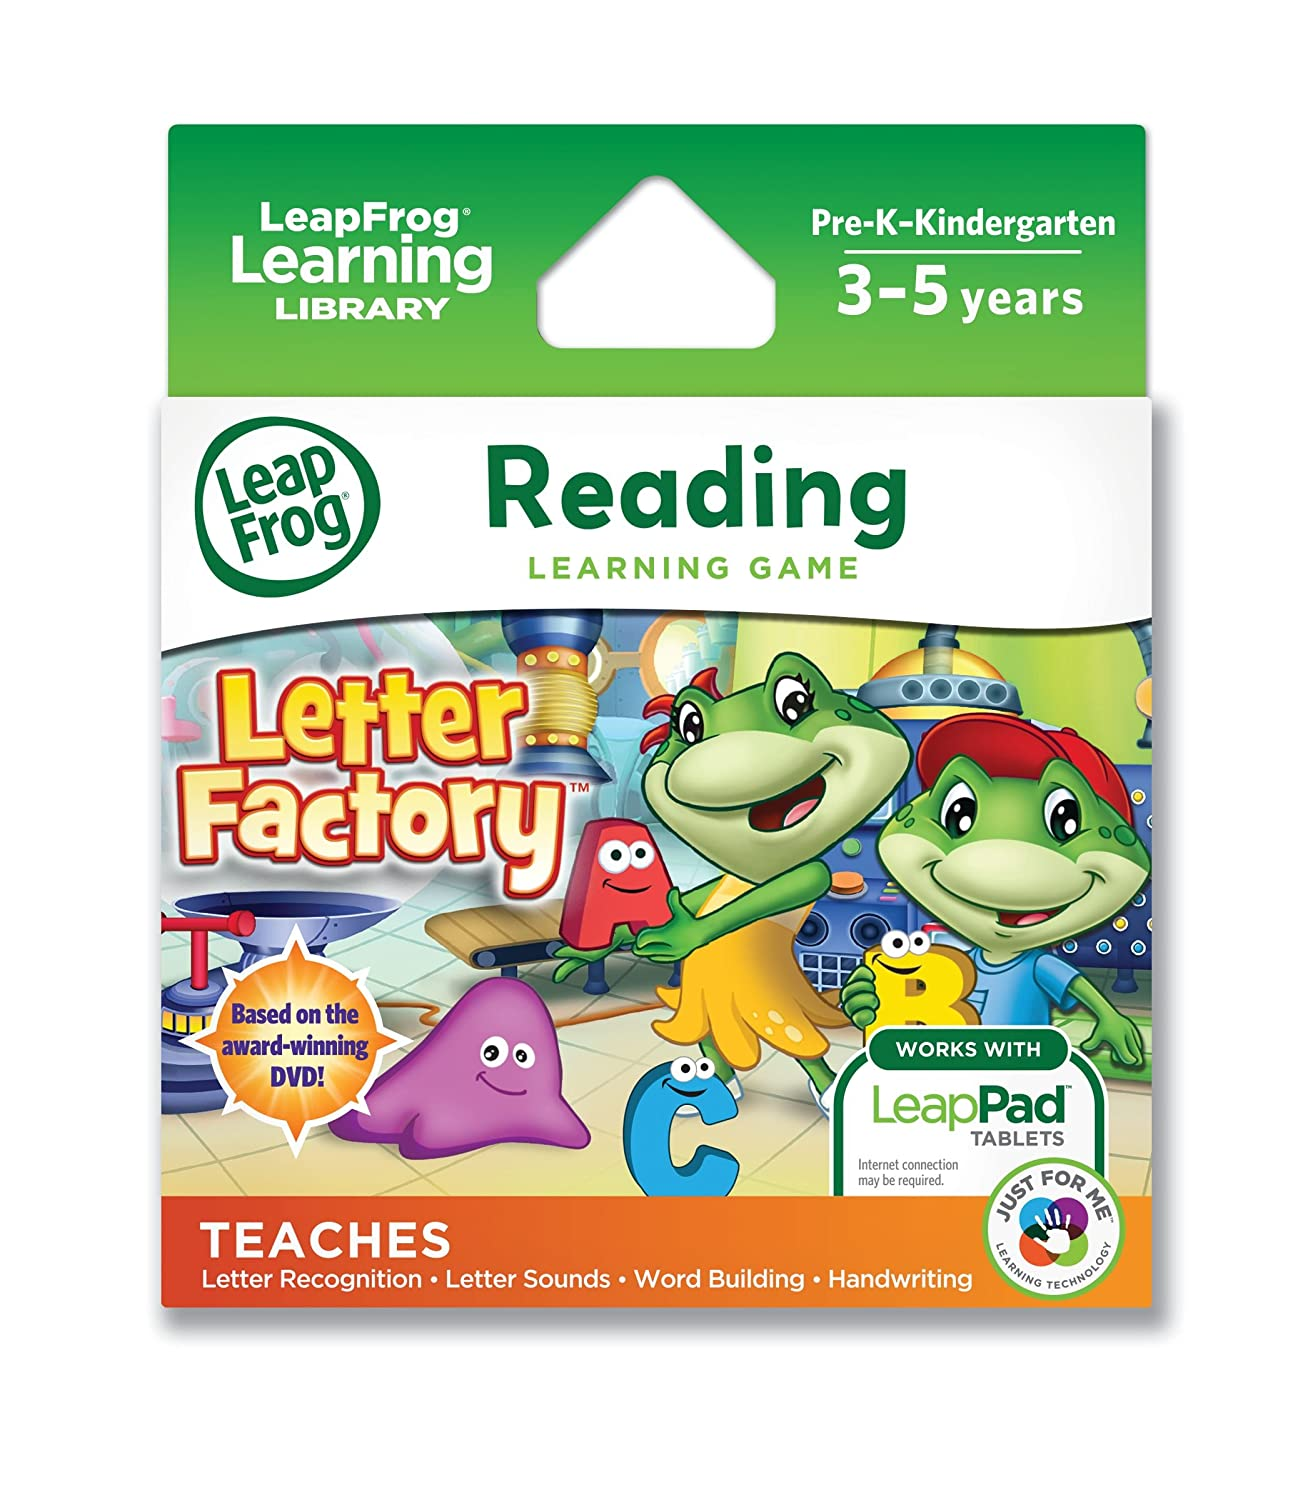 LeapFrog Letter Factory Learning Game works with LeapPad Tablets and Leapster GS